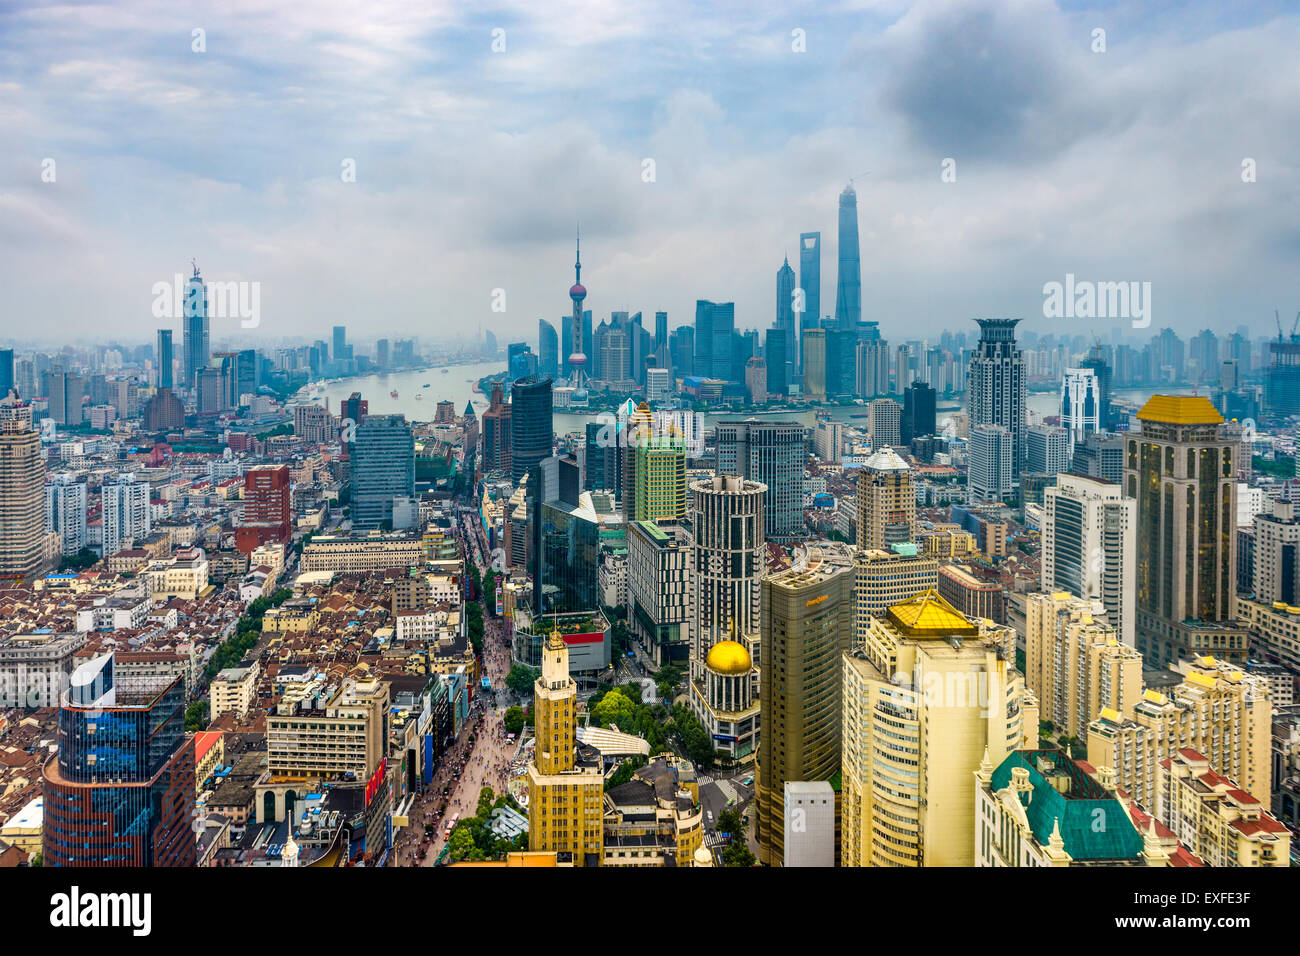 Shanghai, Chine aerial skyline. Photo Stock